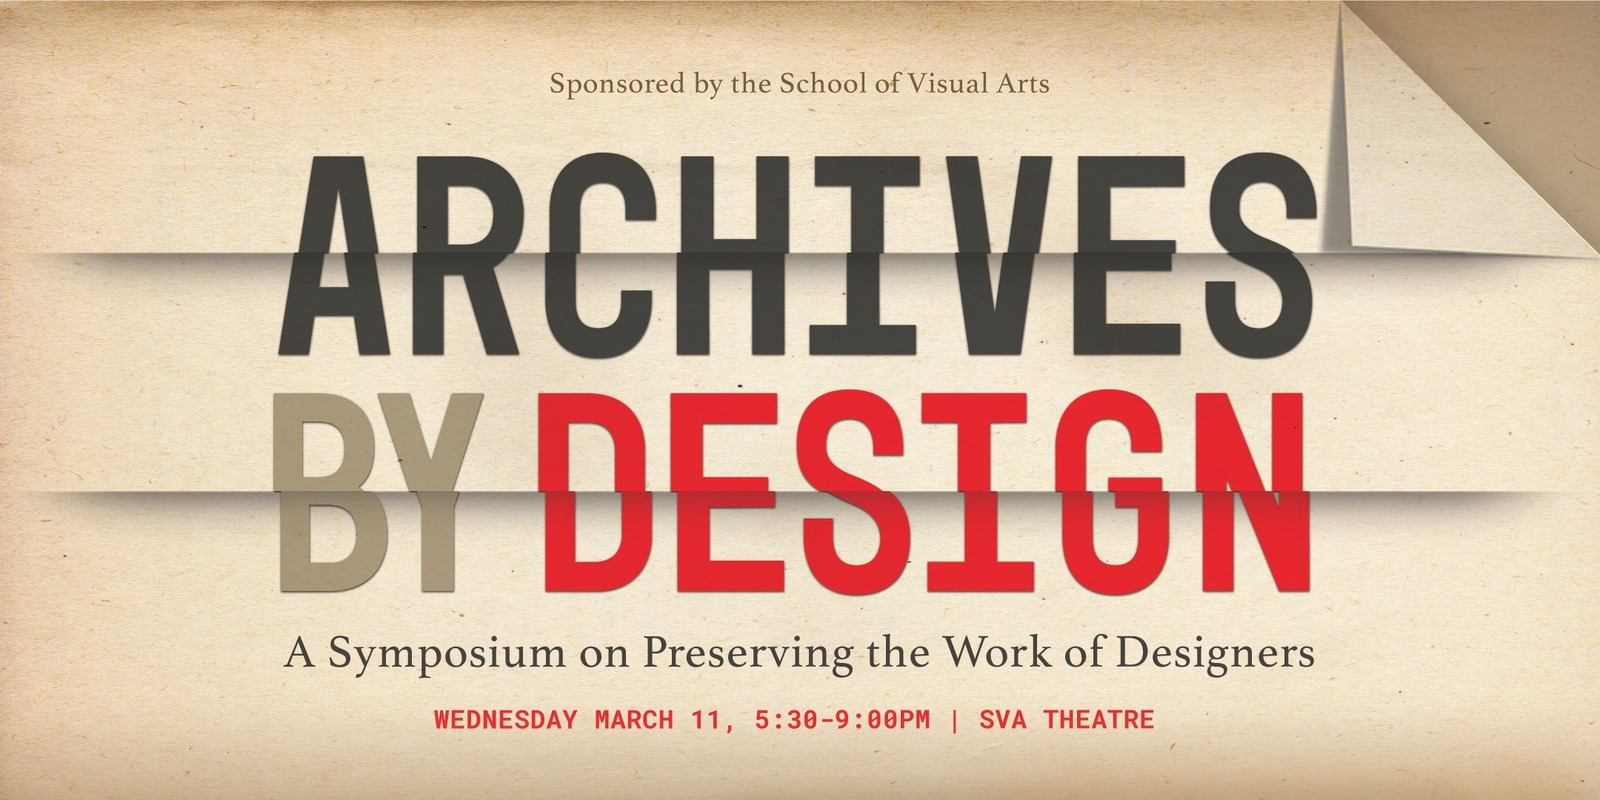 <del>Archives by Design: Preserving the Work of Designers</del> (postponed)